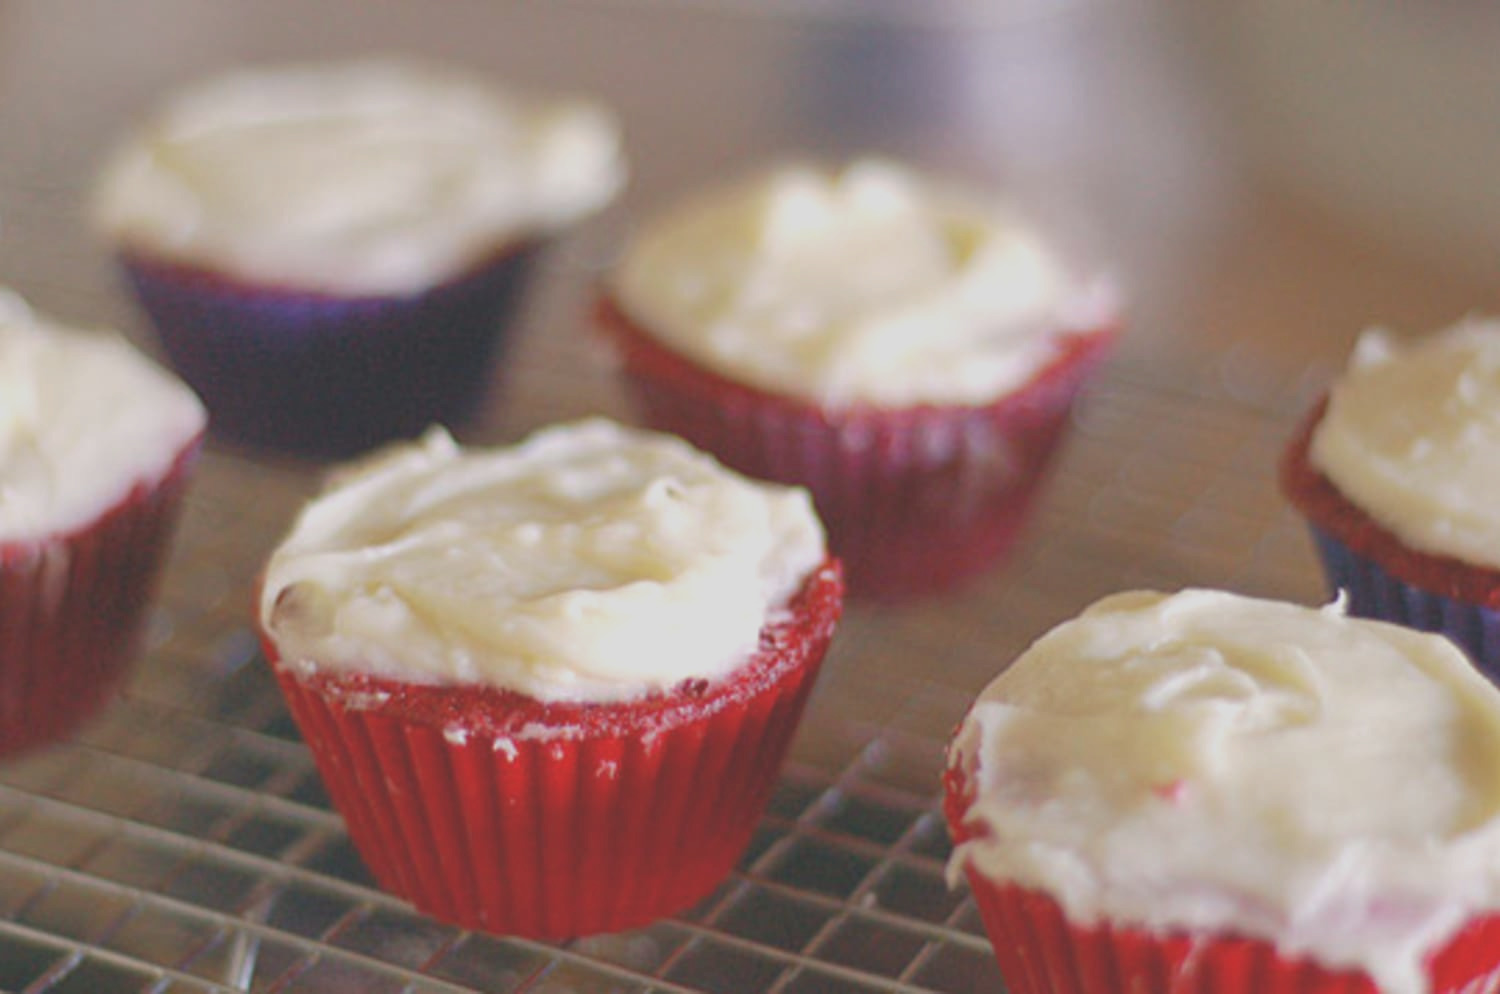 5 better alternatives to red food dye